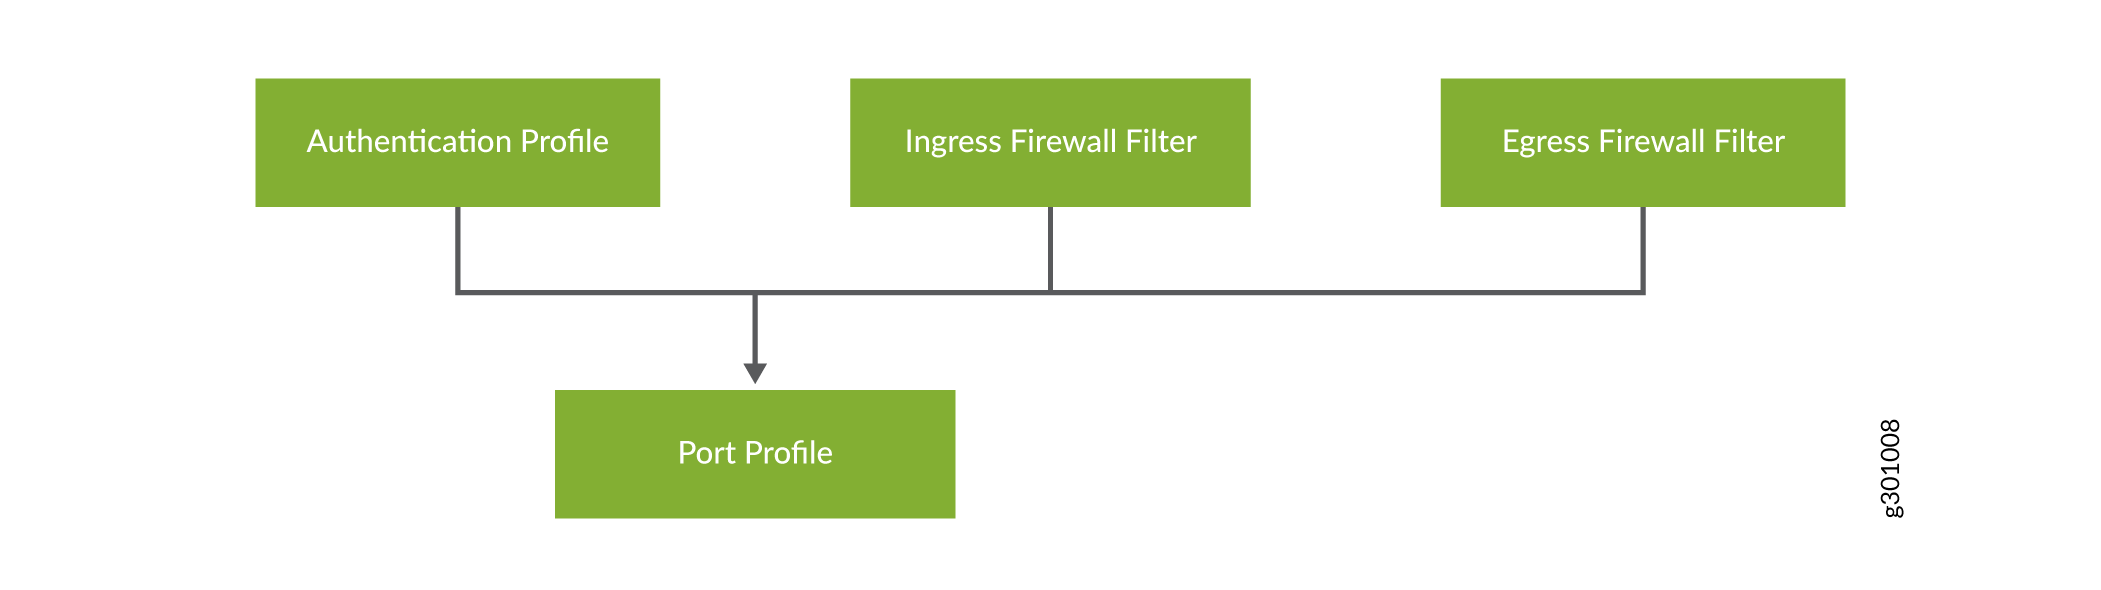 Relationship Between a Port Profile, an Authentication Profile, and Firewall Filters